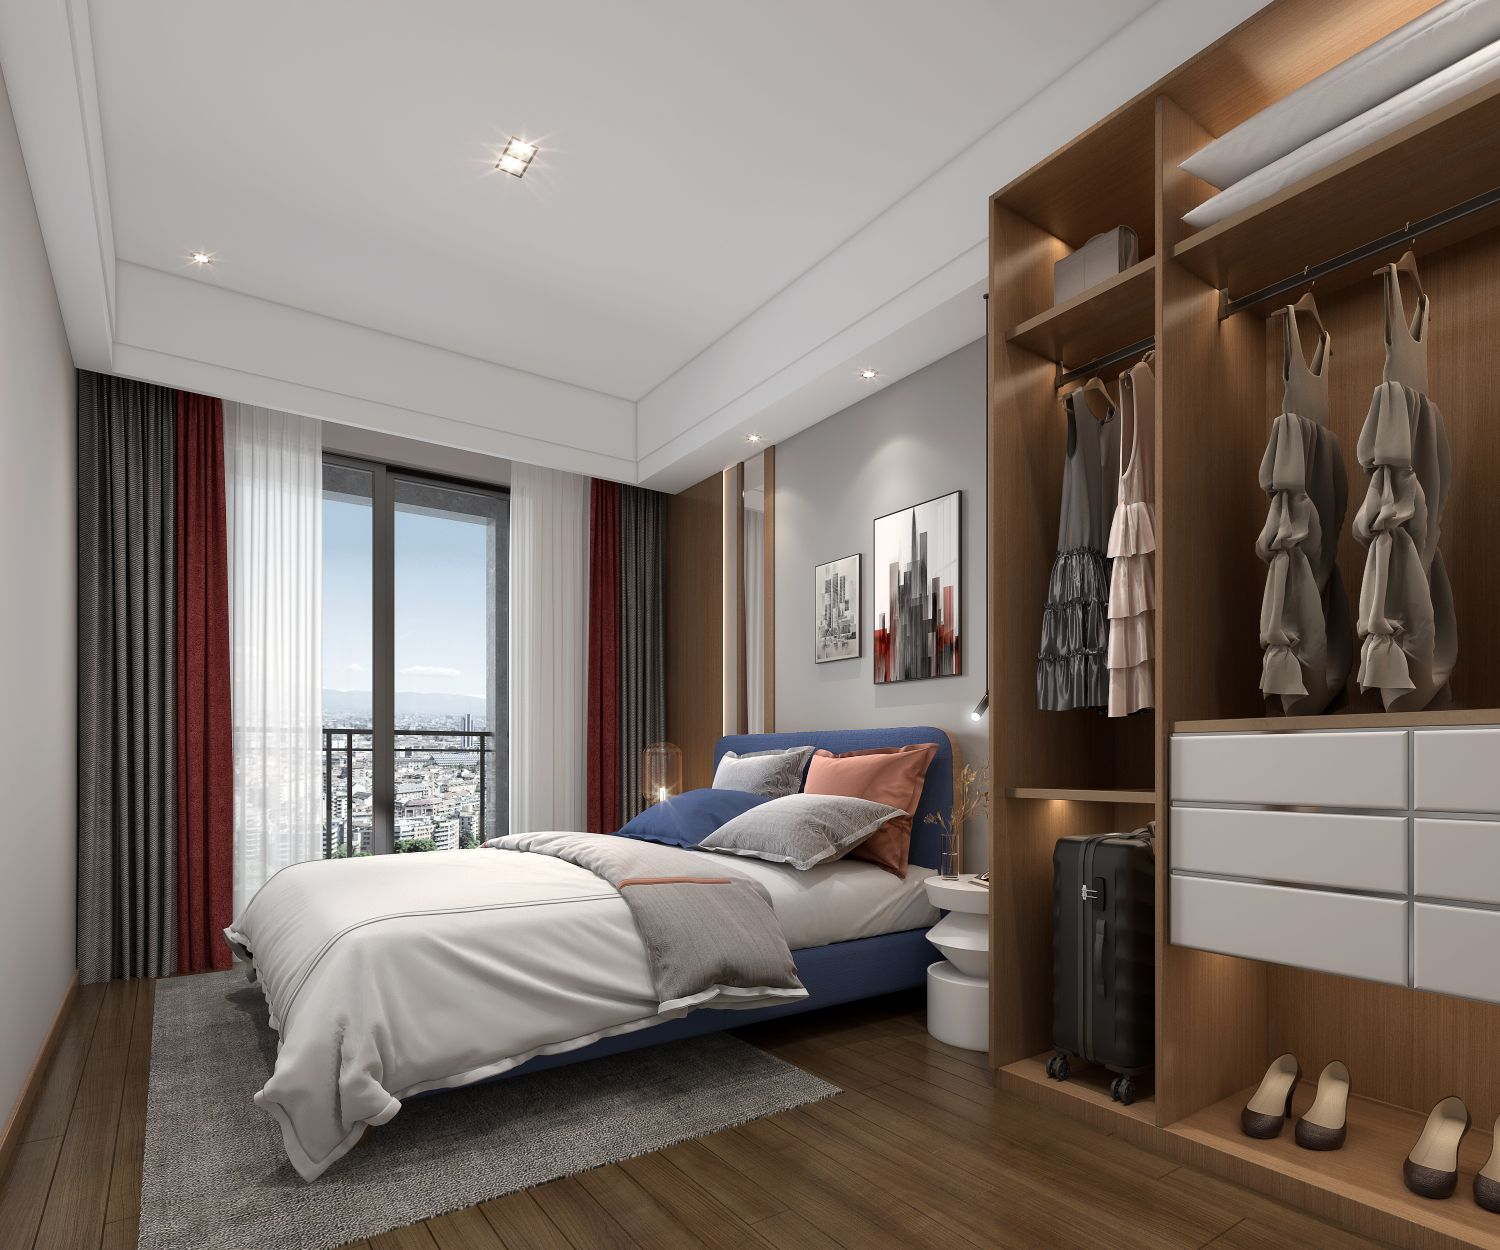 thebedroom of the 1 bedroom condo for sale at Prince Huan Yu Center in Tonle Bassac Phnom Penh Cambodia